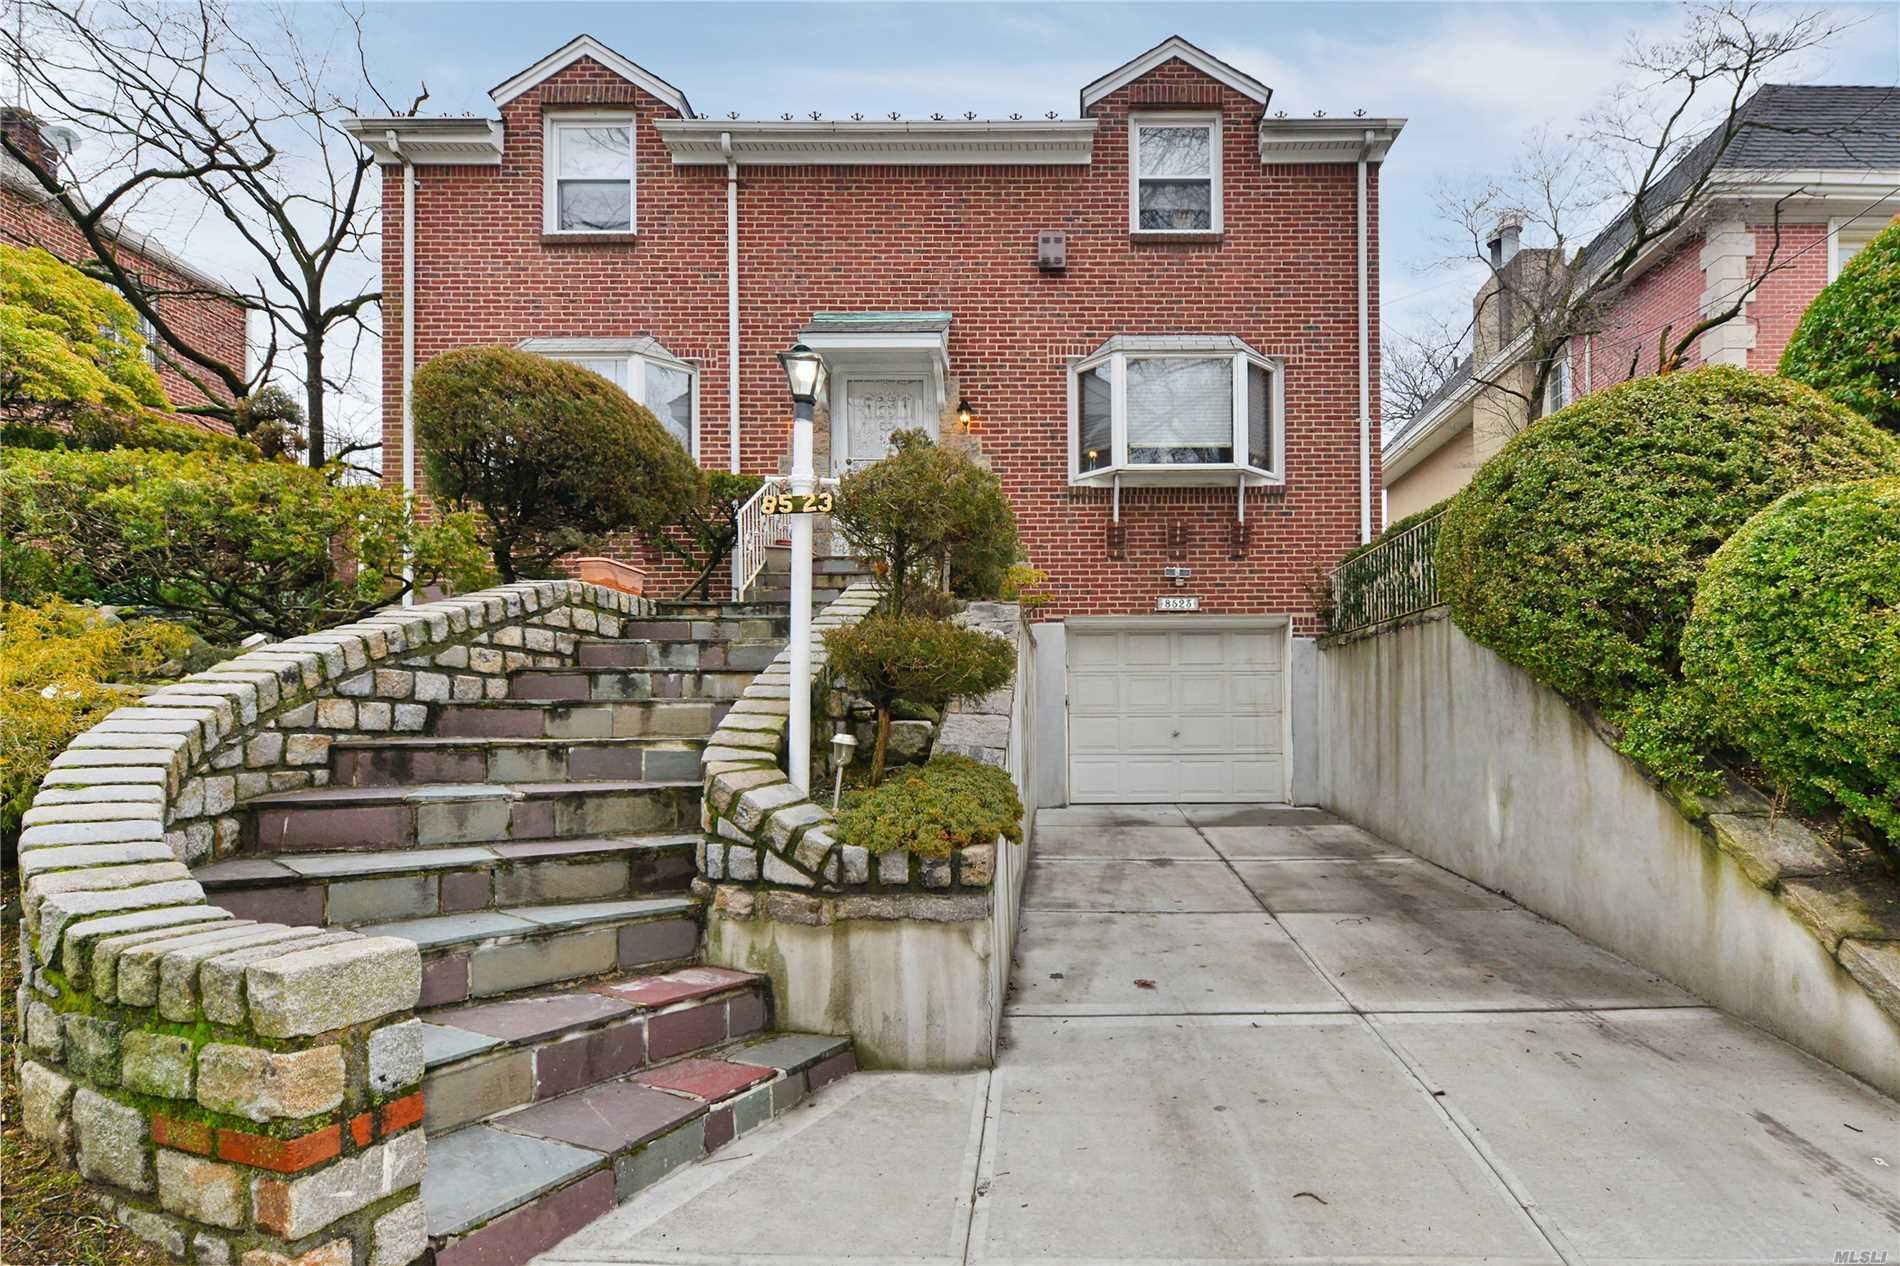 Step Into This All Brick True Center Hall Colonial House Located In The Most Desirable Block In Jamaica Estates. This Home Is In Immaculate Condition And Is Ready To Welcome All! Must Be Seen To Truly Appreciate.